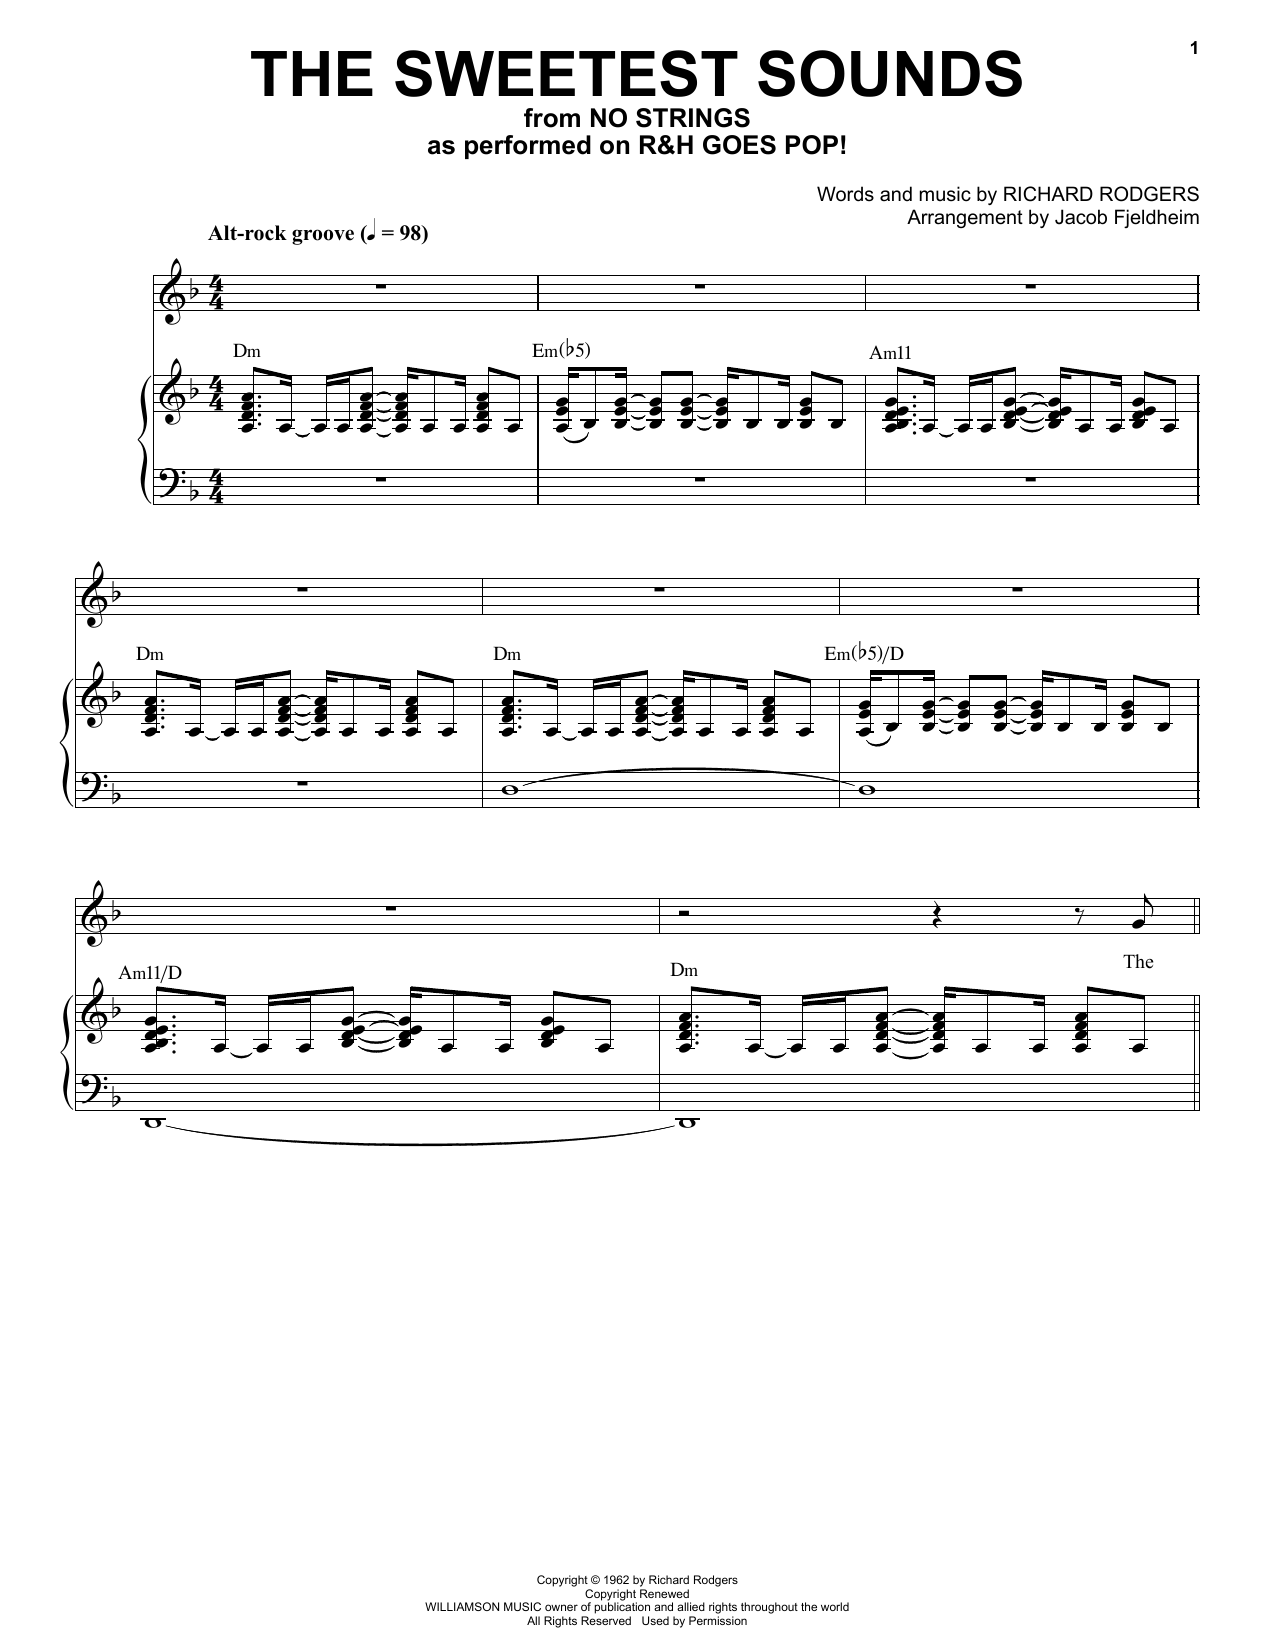 Richard Rodgers The Sweetest Sounds [R&H Goes Pop! version] (from No Strings) sheet music notes printable PDF score